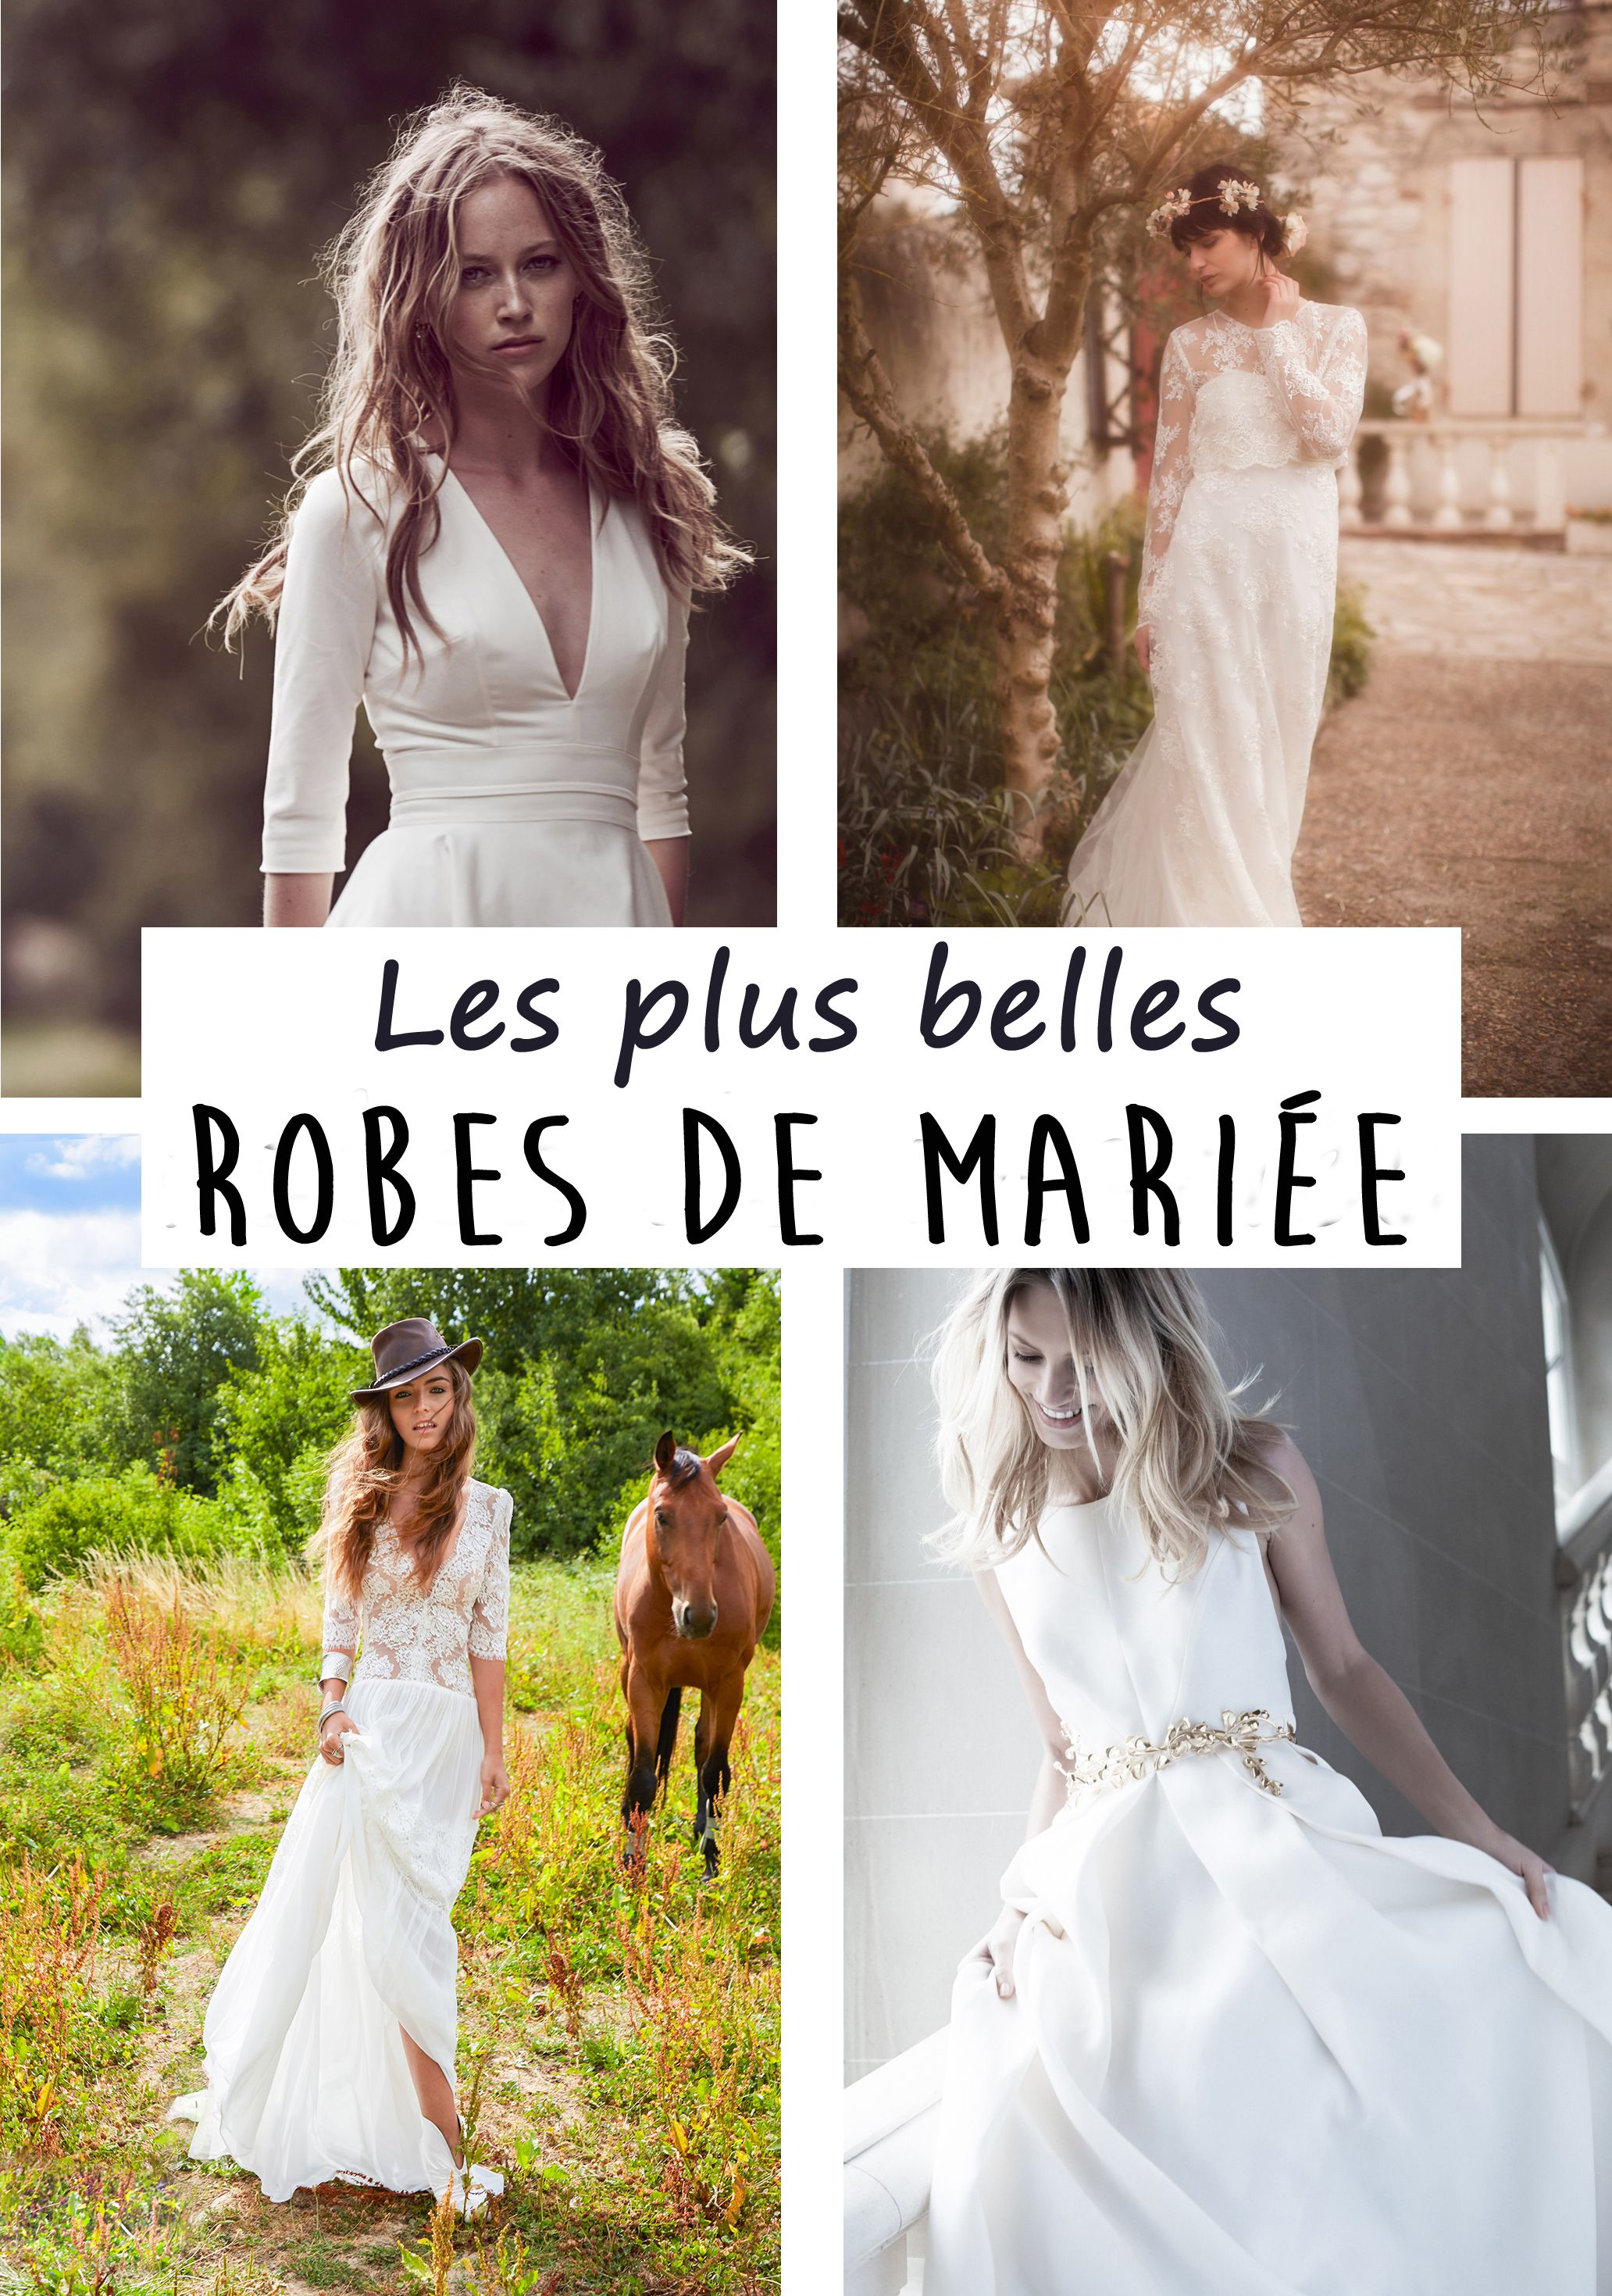 La plus belle robe de mariee 2017